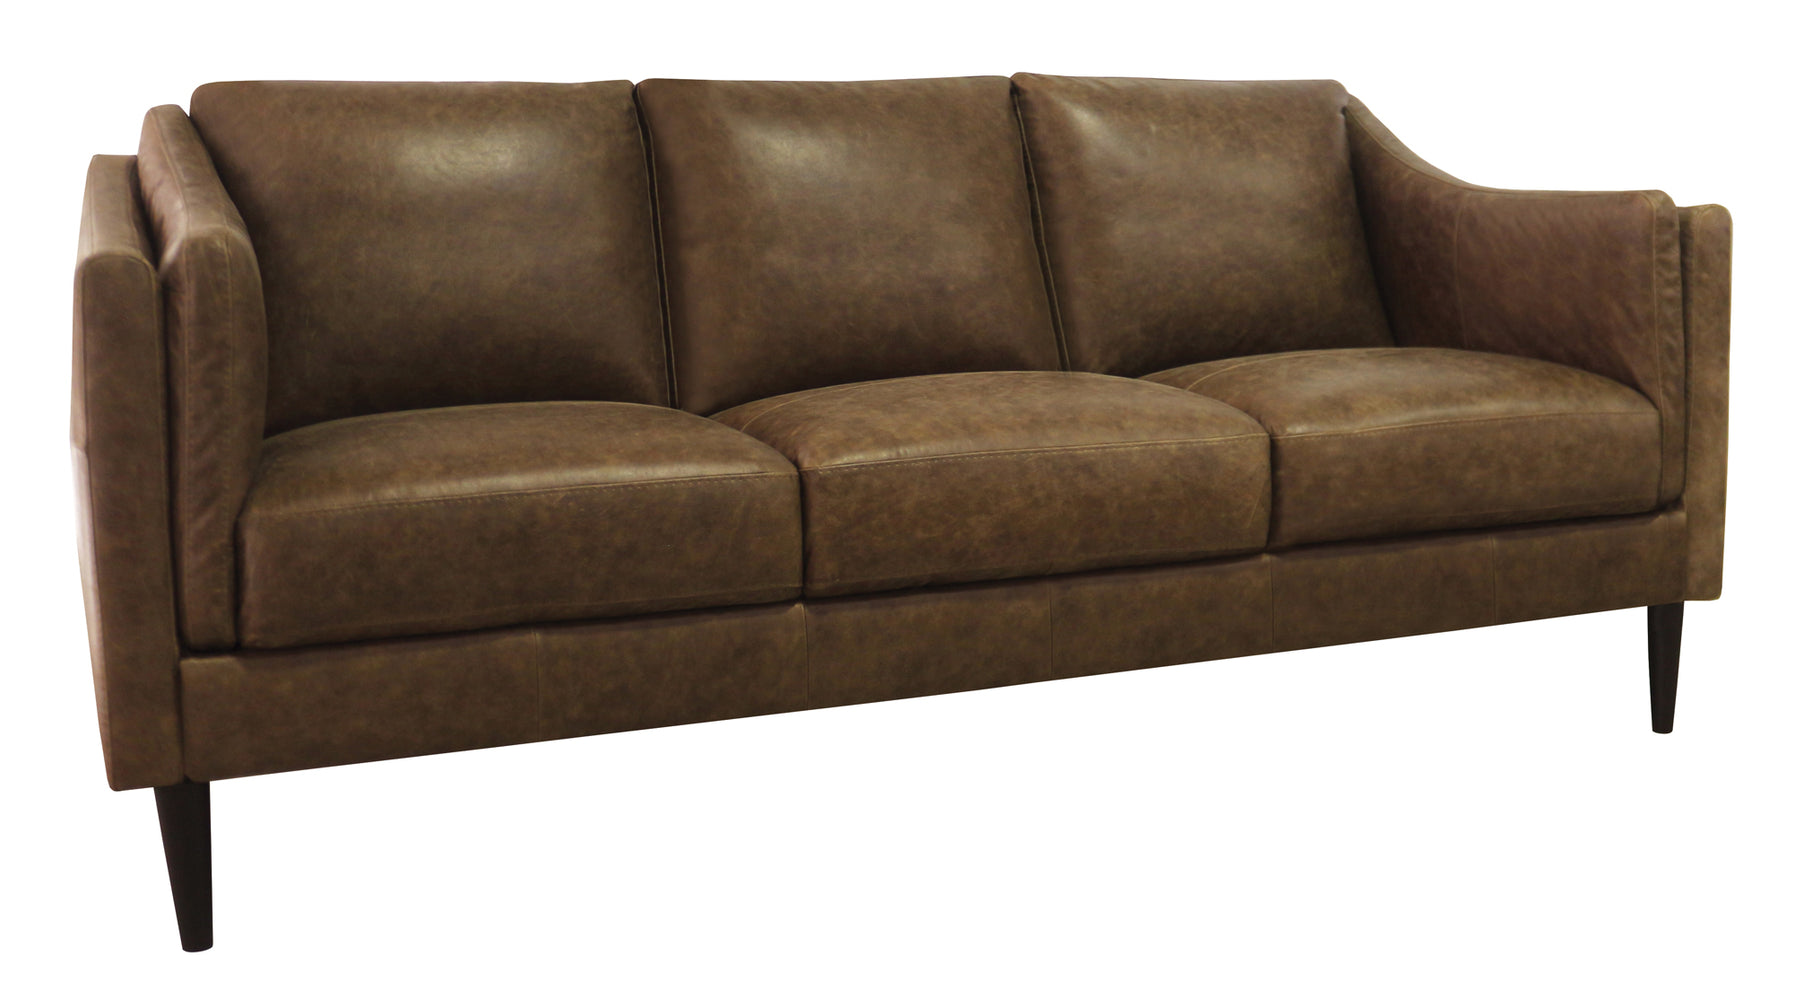 Ava Italian Leather Furniture Collection